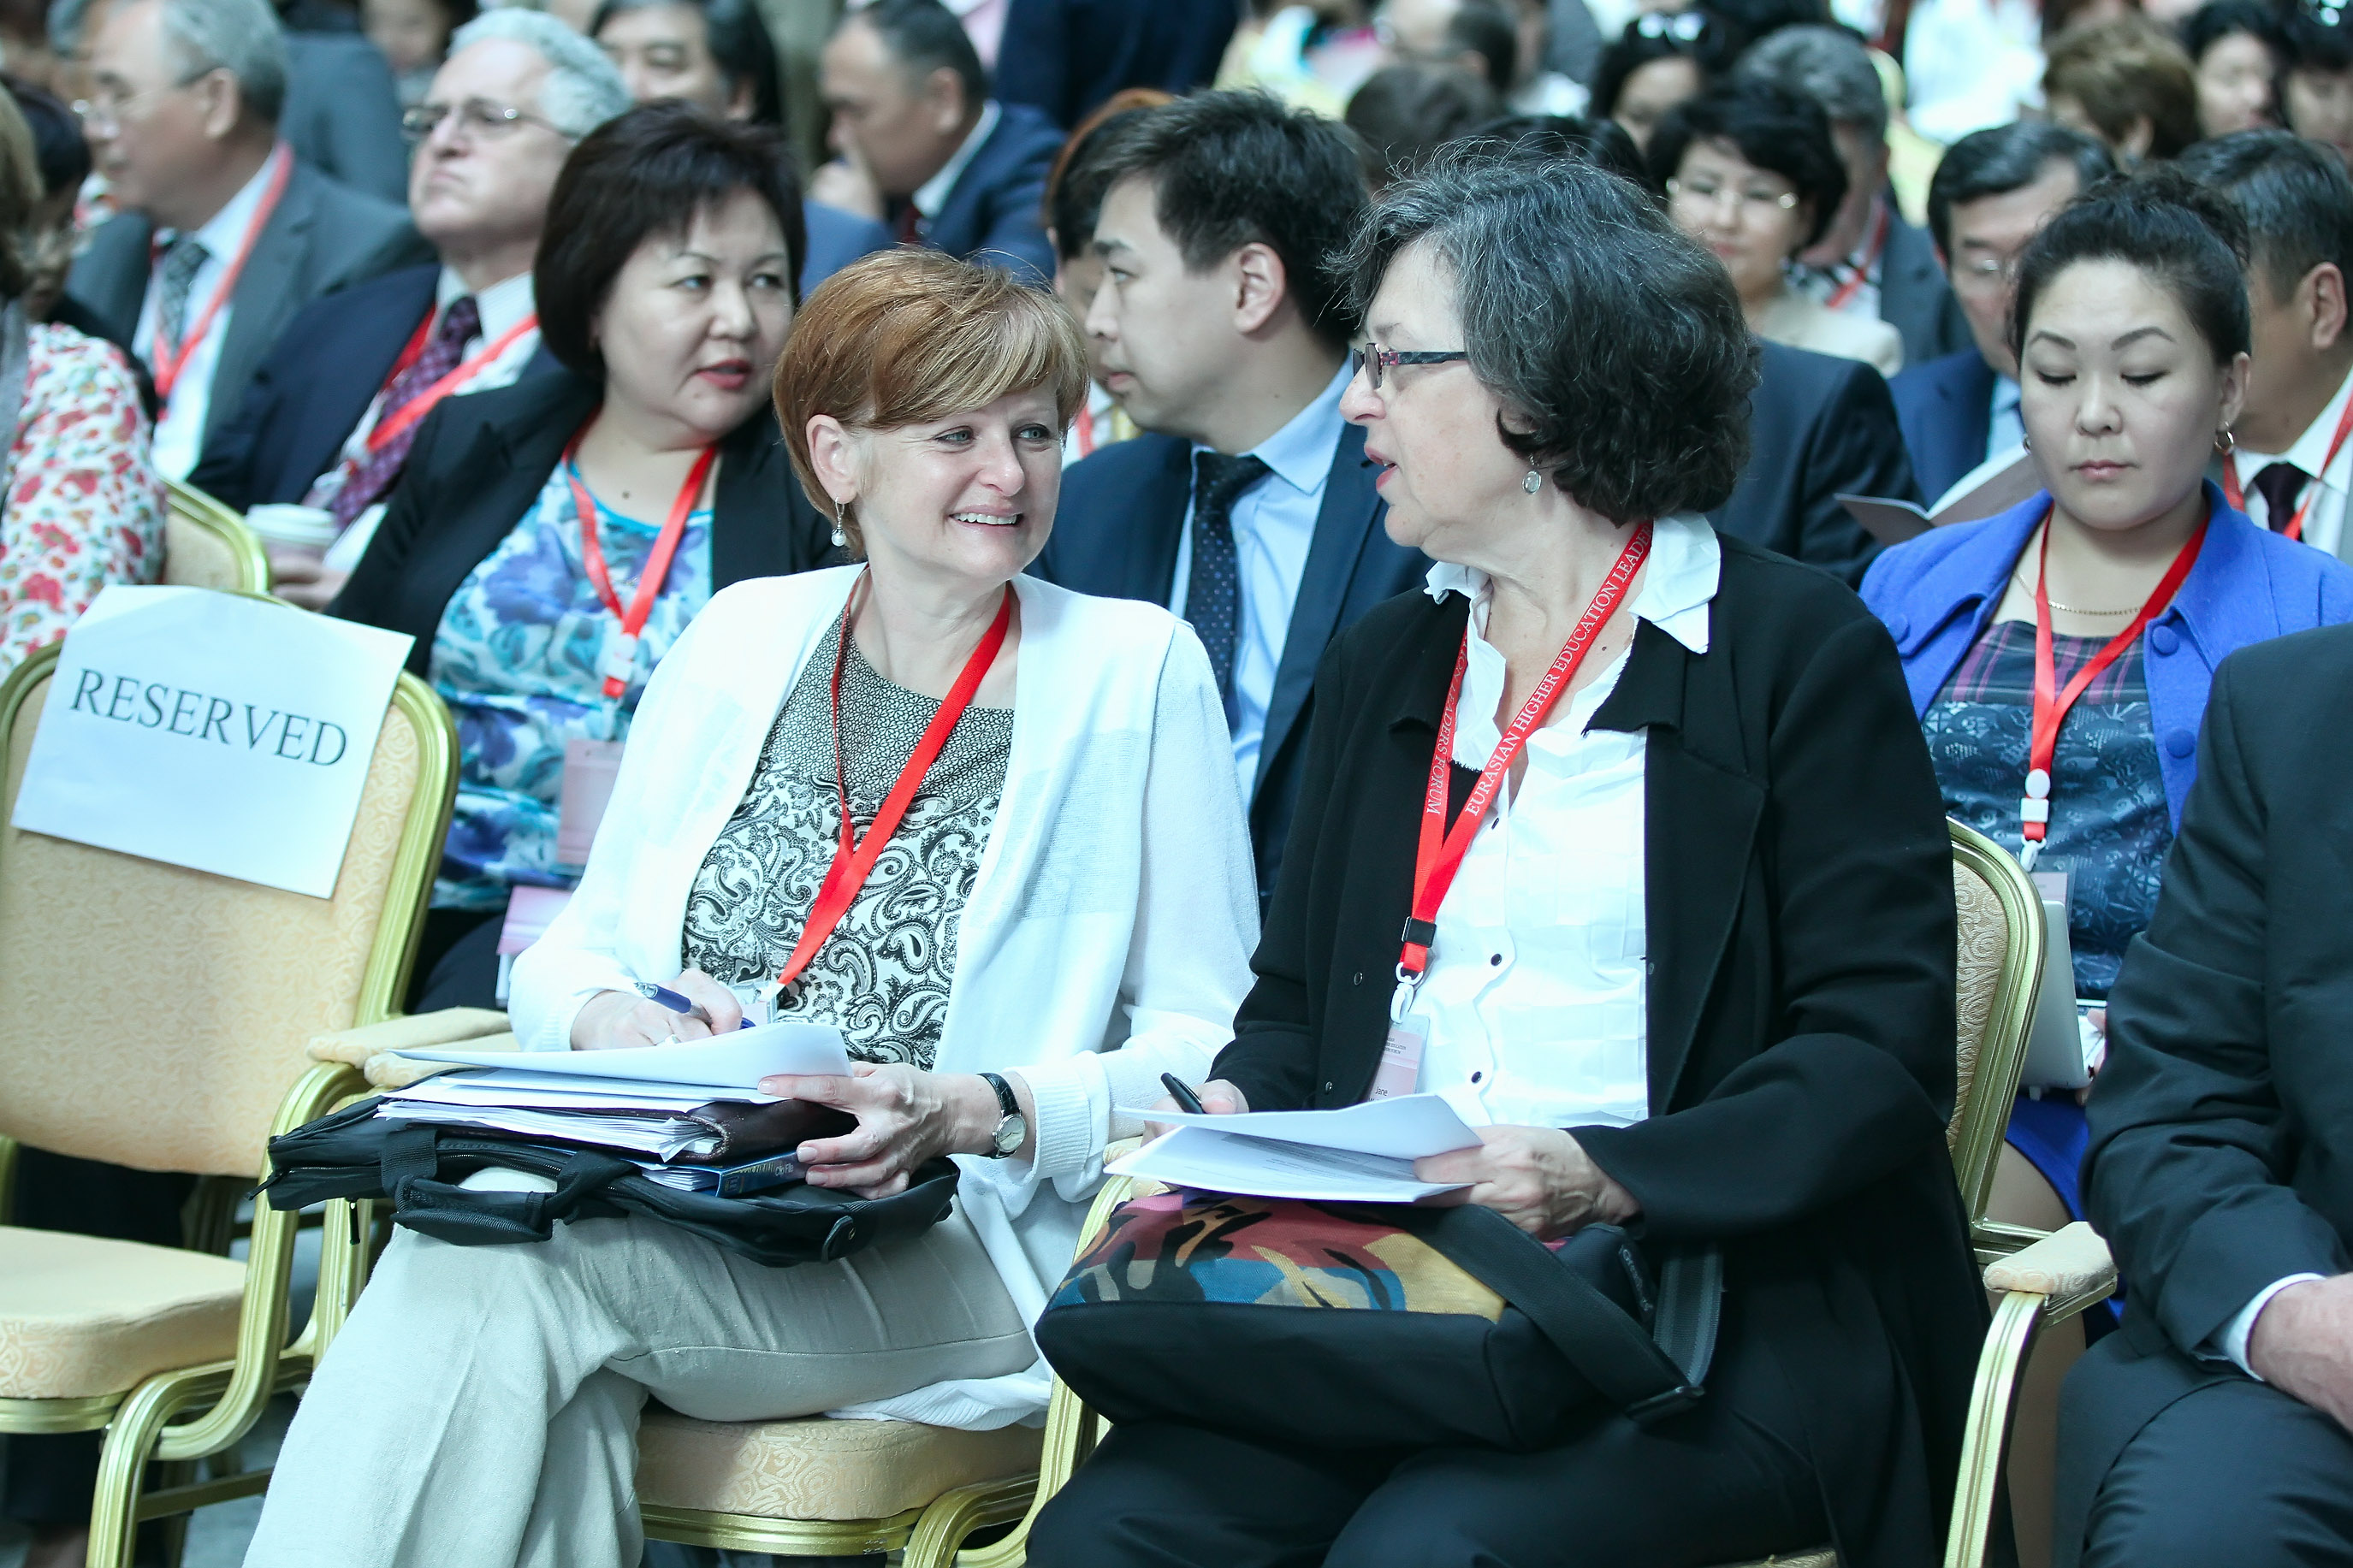 Jane Wellman, right, was one of the many international speakers at the conference. She is executive director of the Washington-based National Association of System heads. Photo courtesy of Nazarbayev University